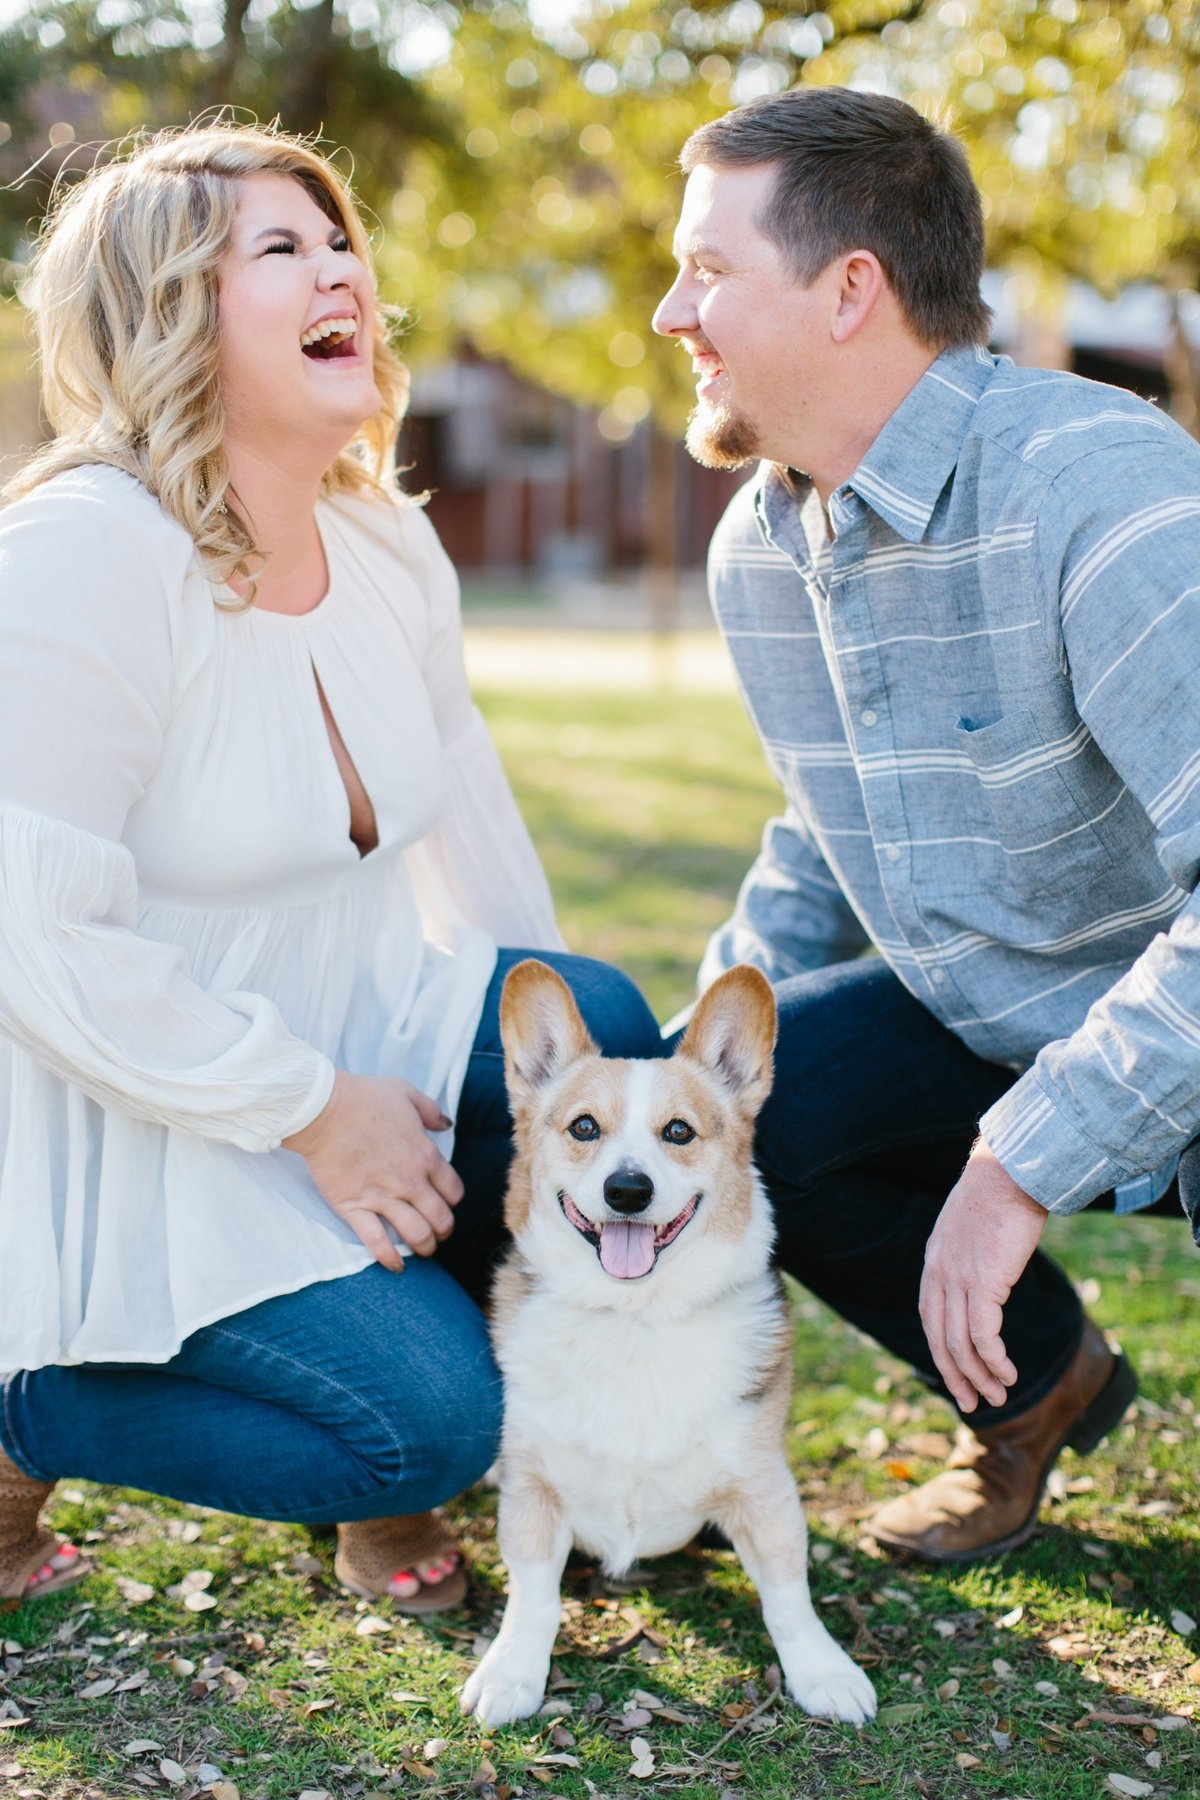 Film Engagement Session in Gruene, Texas. Bride wearing white flowy top, groom is wearing light blue button up. They brought their dog, a corgi to the session!